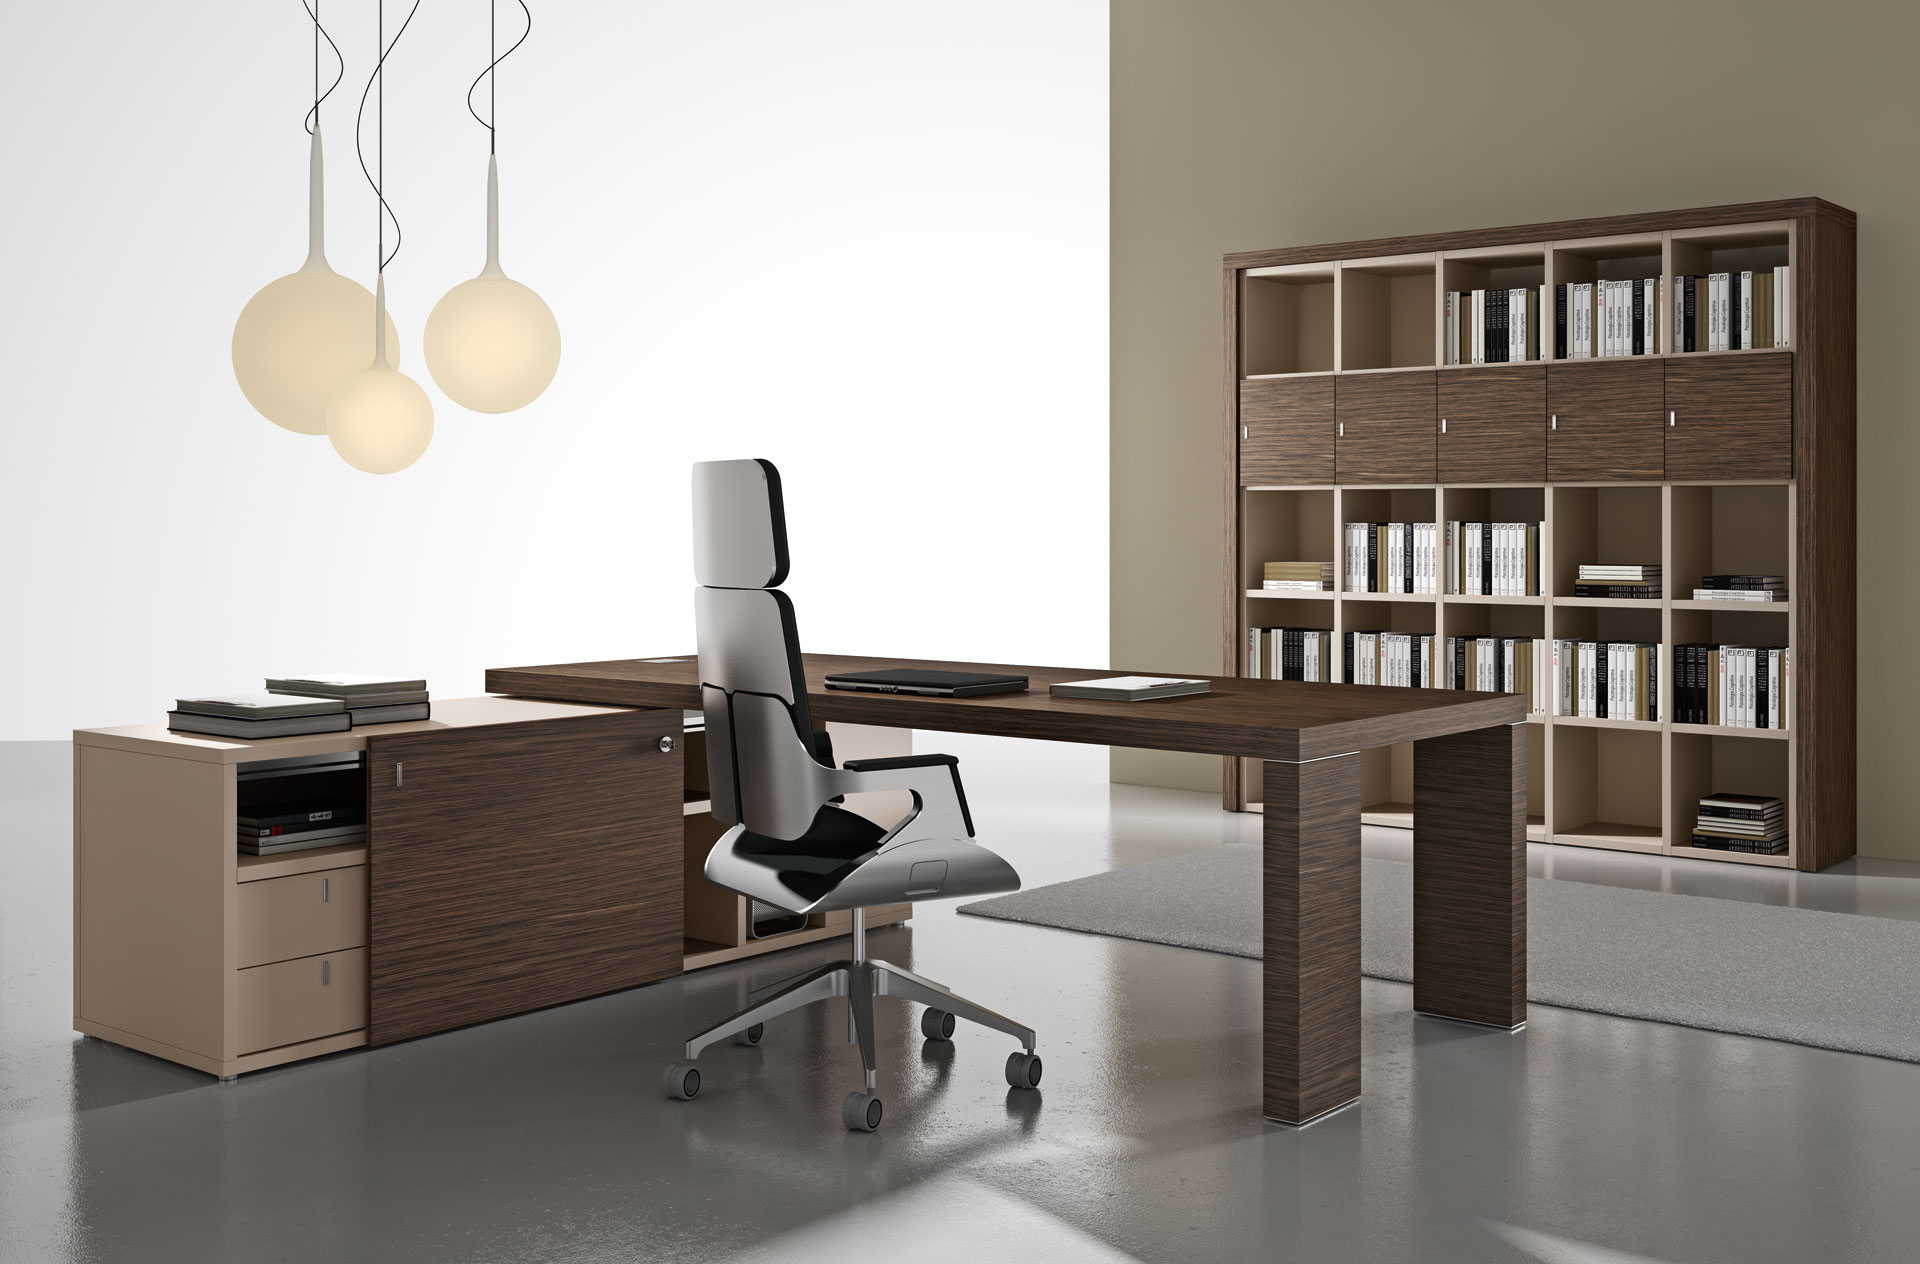 Alea office casa italia for Design per ufficio